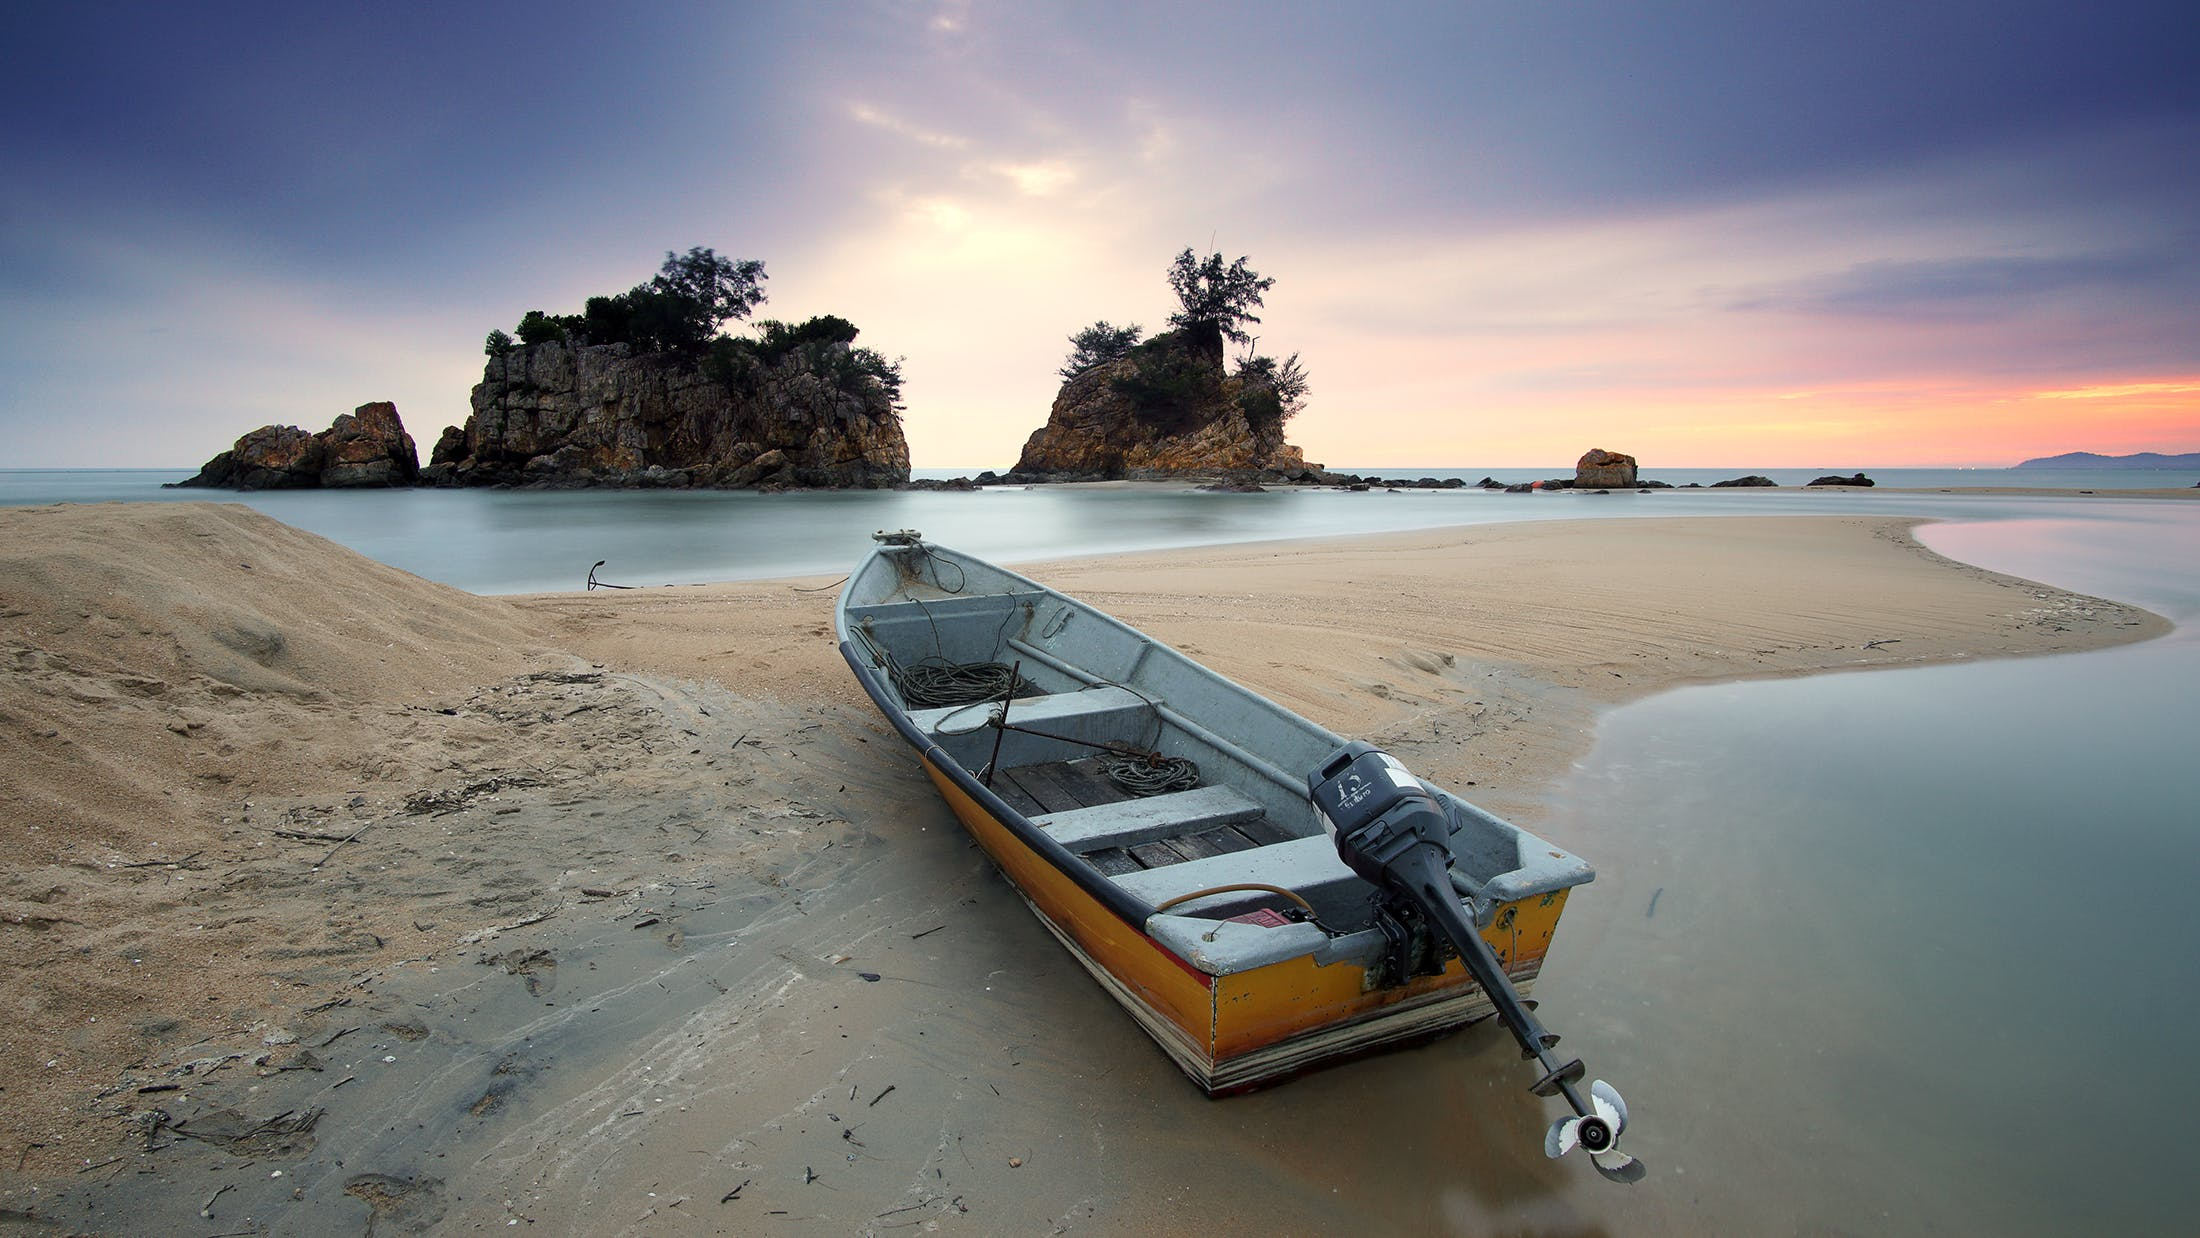 Gray and Brown Boat Docking on Seashore